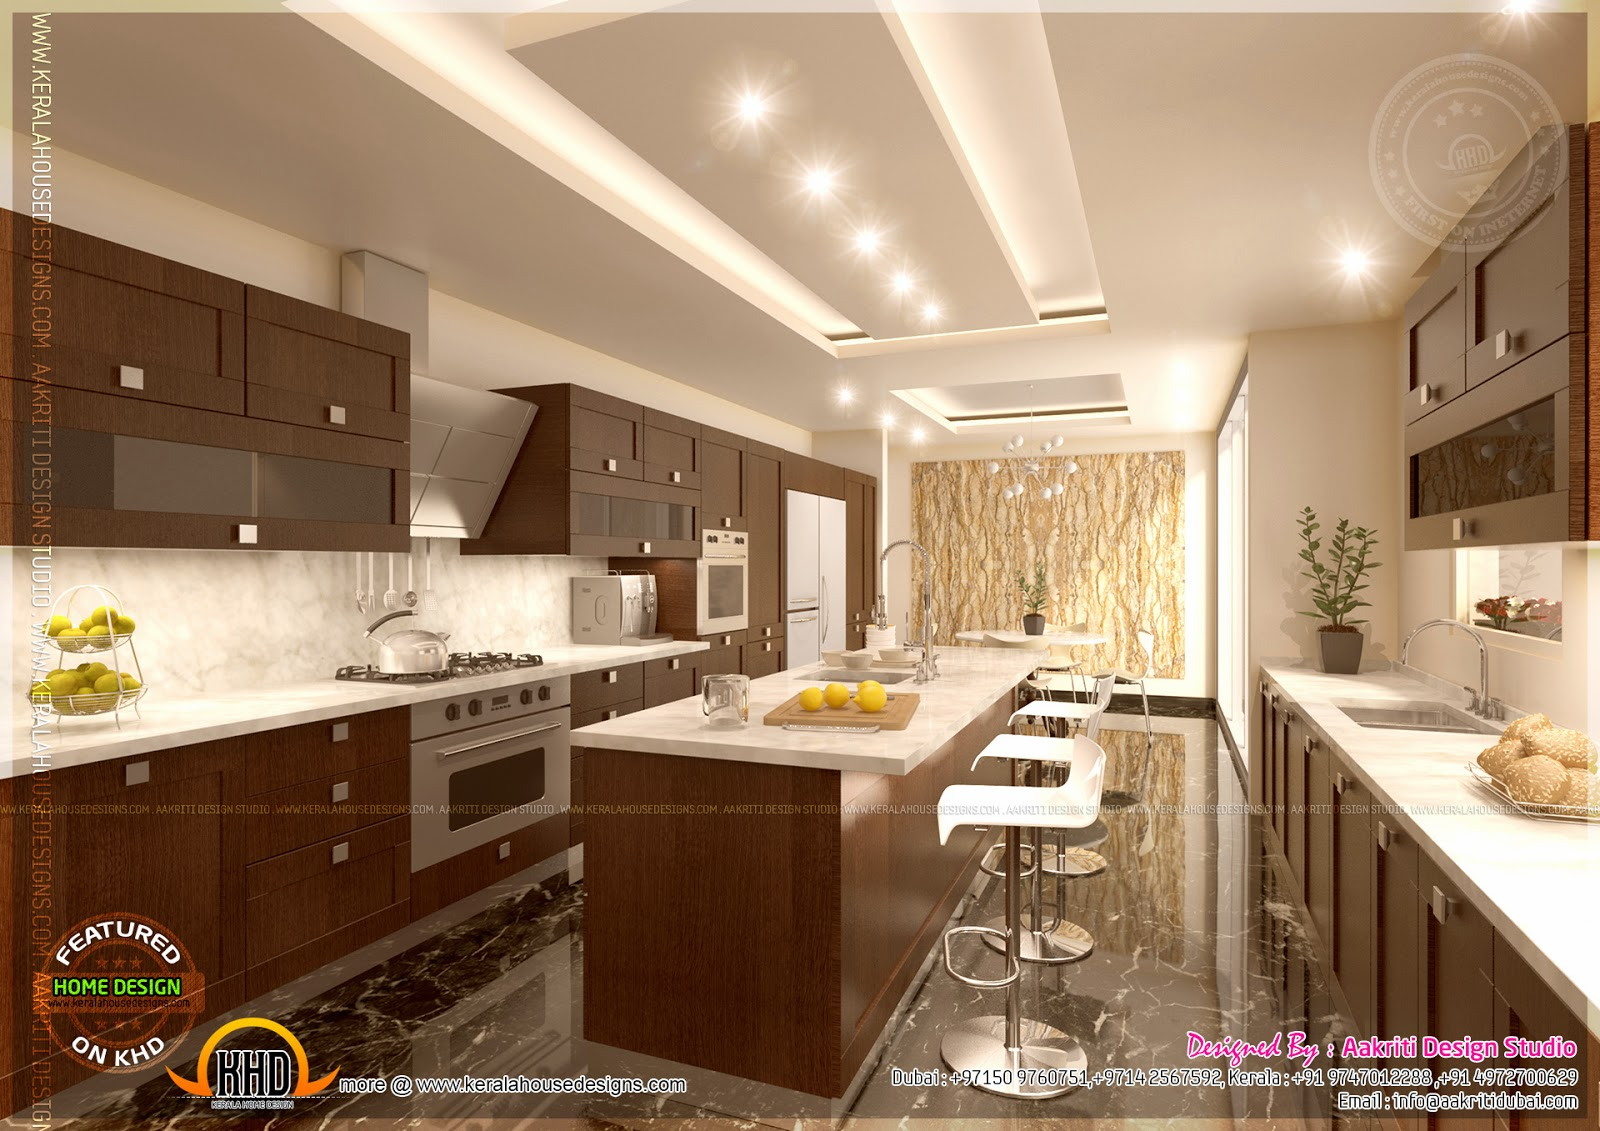 Kitchen designs by aakriti design studio kerala home for Home kitchen design images